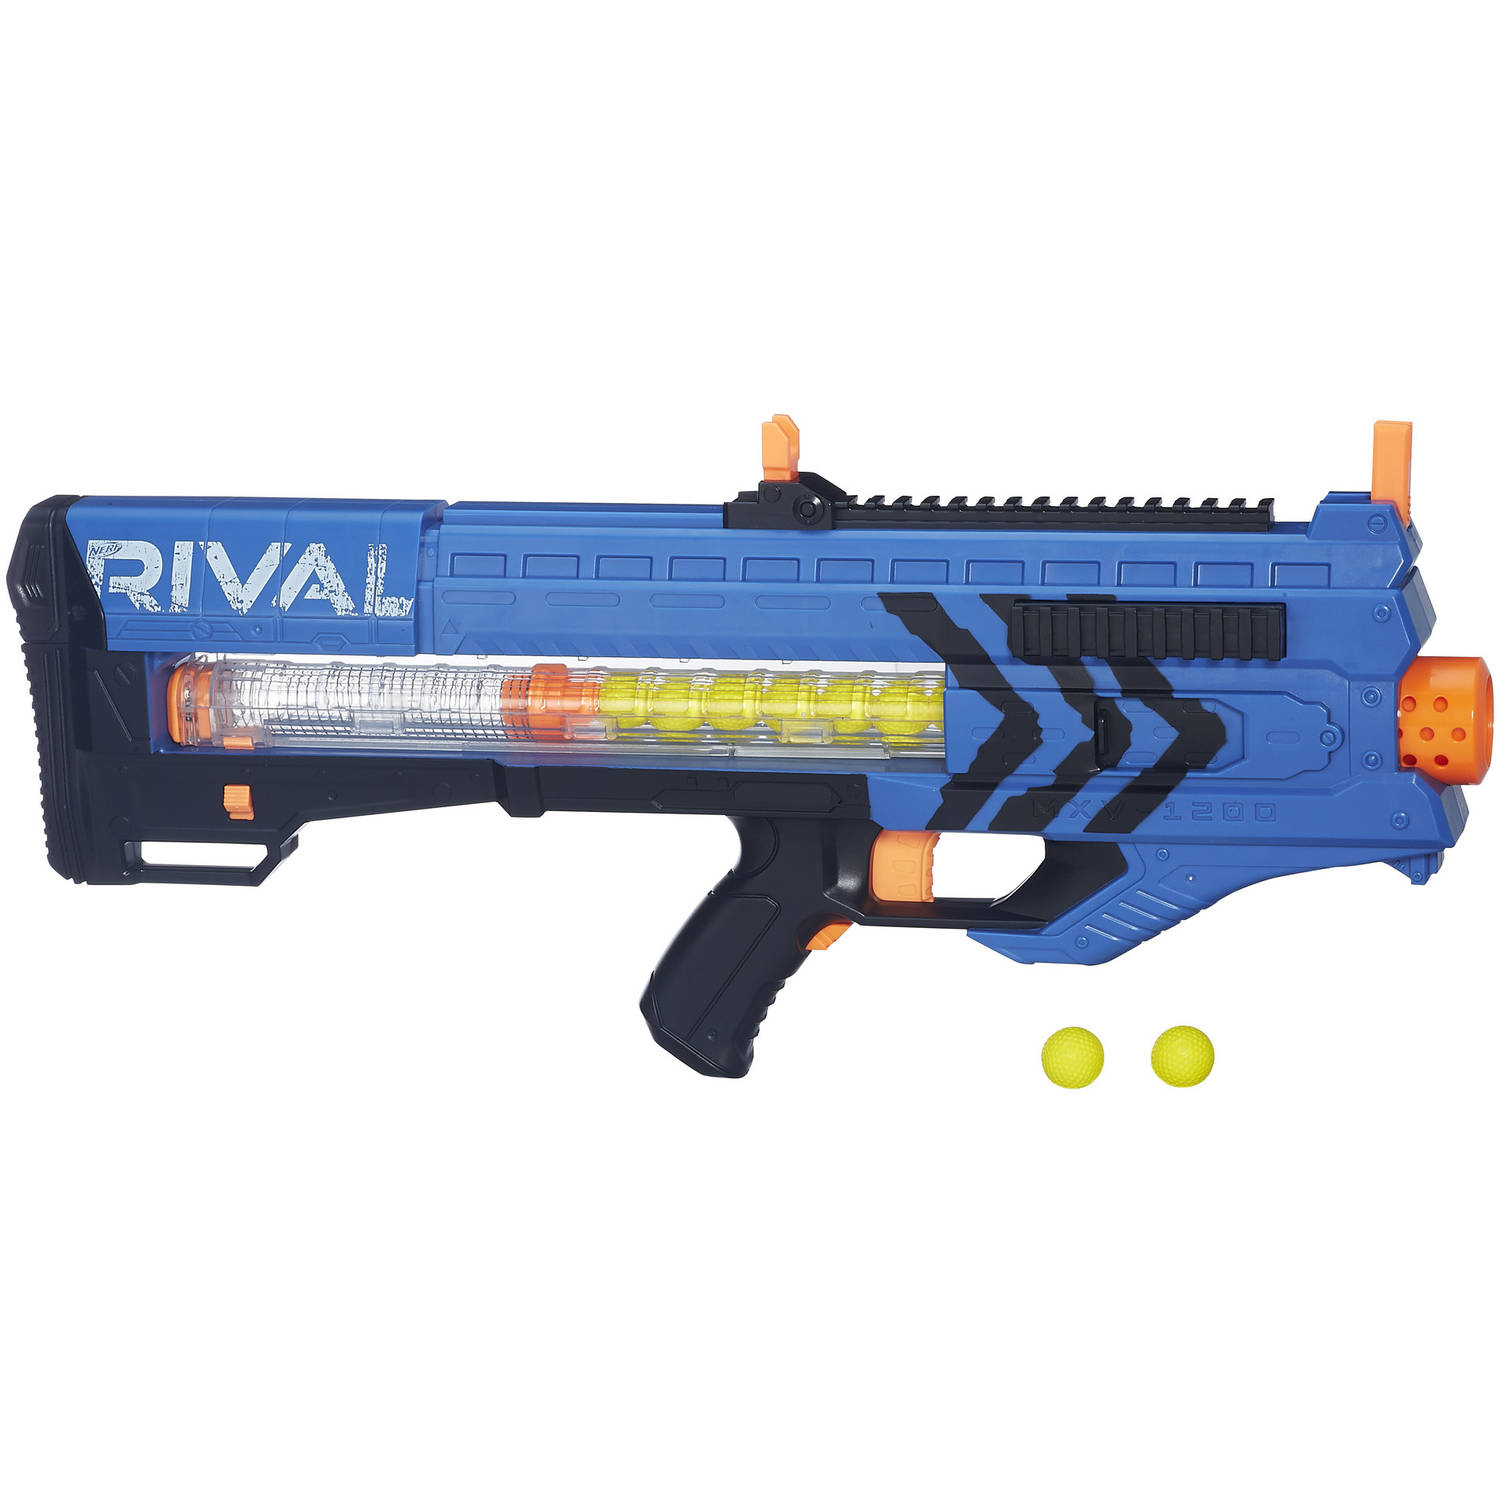 Nerf Rival Zeus MXV-1200 Blaster (Blue) by Hasbro